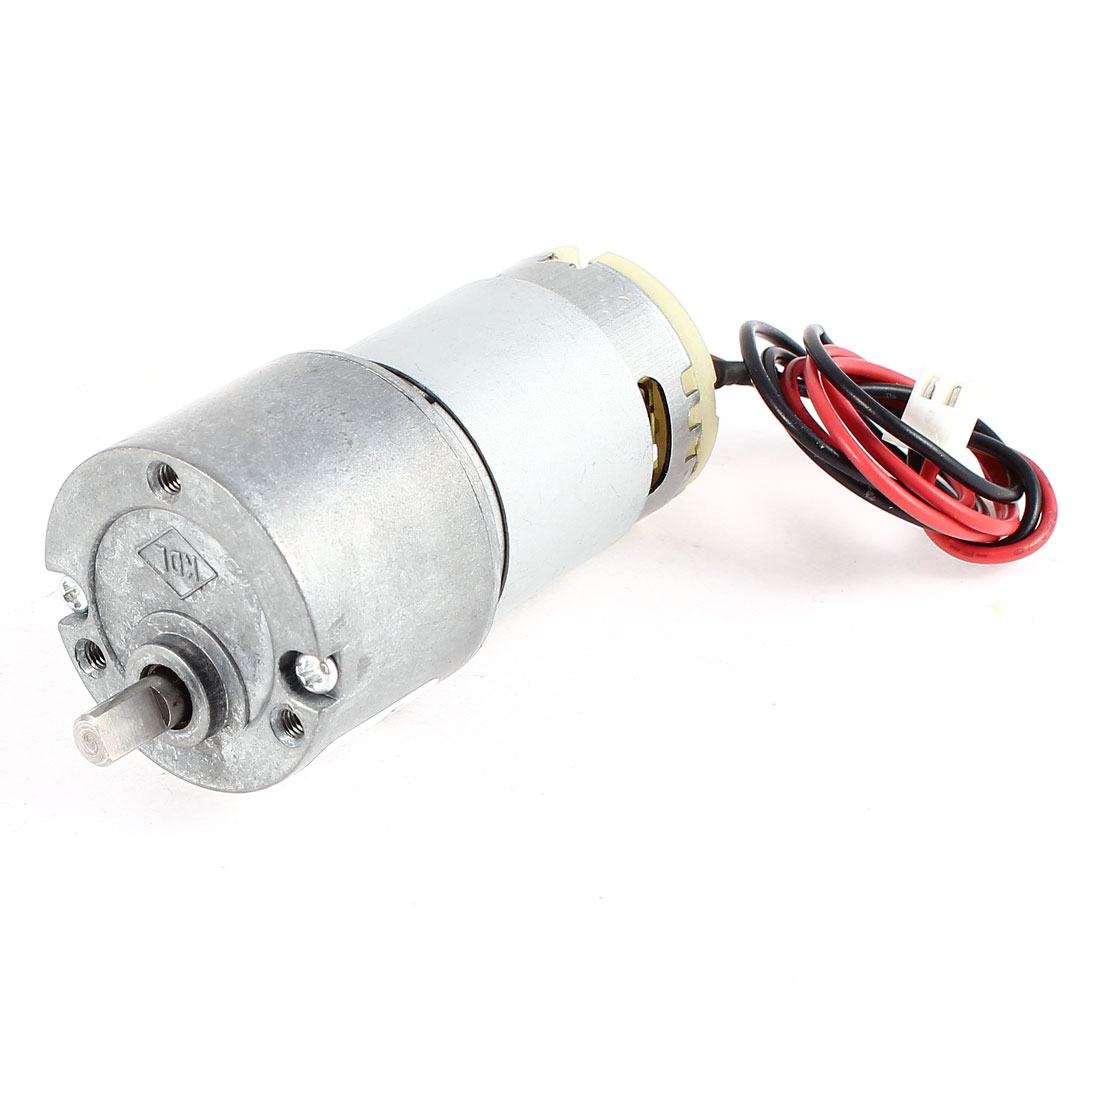 DC 12V 40RPM 8Kg.cm Torque 4.9mm Dia Shaft Electric Geabox Speed Reduction Motor